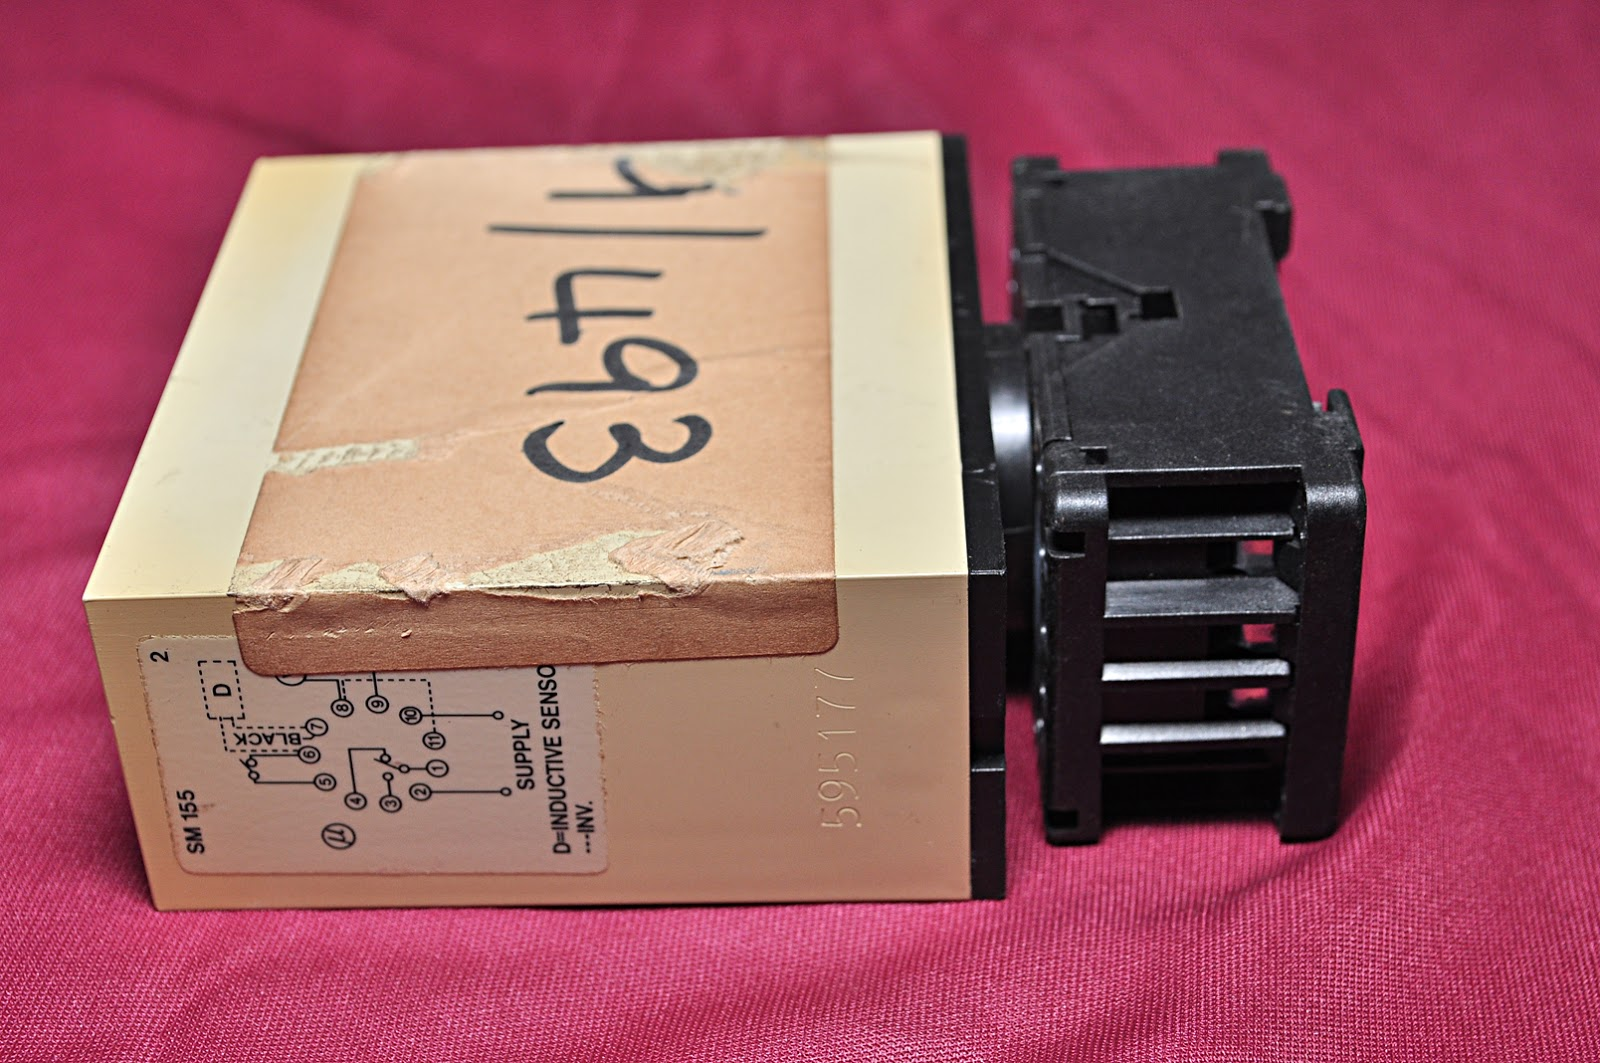 Electromatic Carlo Gavazzi Sm 155 230 Tachometer Relay Aeliya Powertronixinductor1jpg 10a 380 Vac Mat 478984 Group 0308 Desc Proximity Sensor Manf Cochran Ltd Part 6695 10 Made In Denmark Condition New 1 Pcs Ref 2201